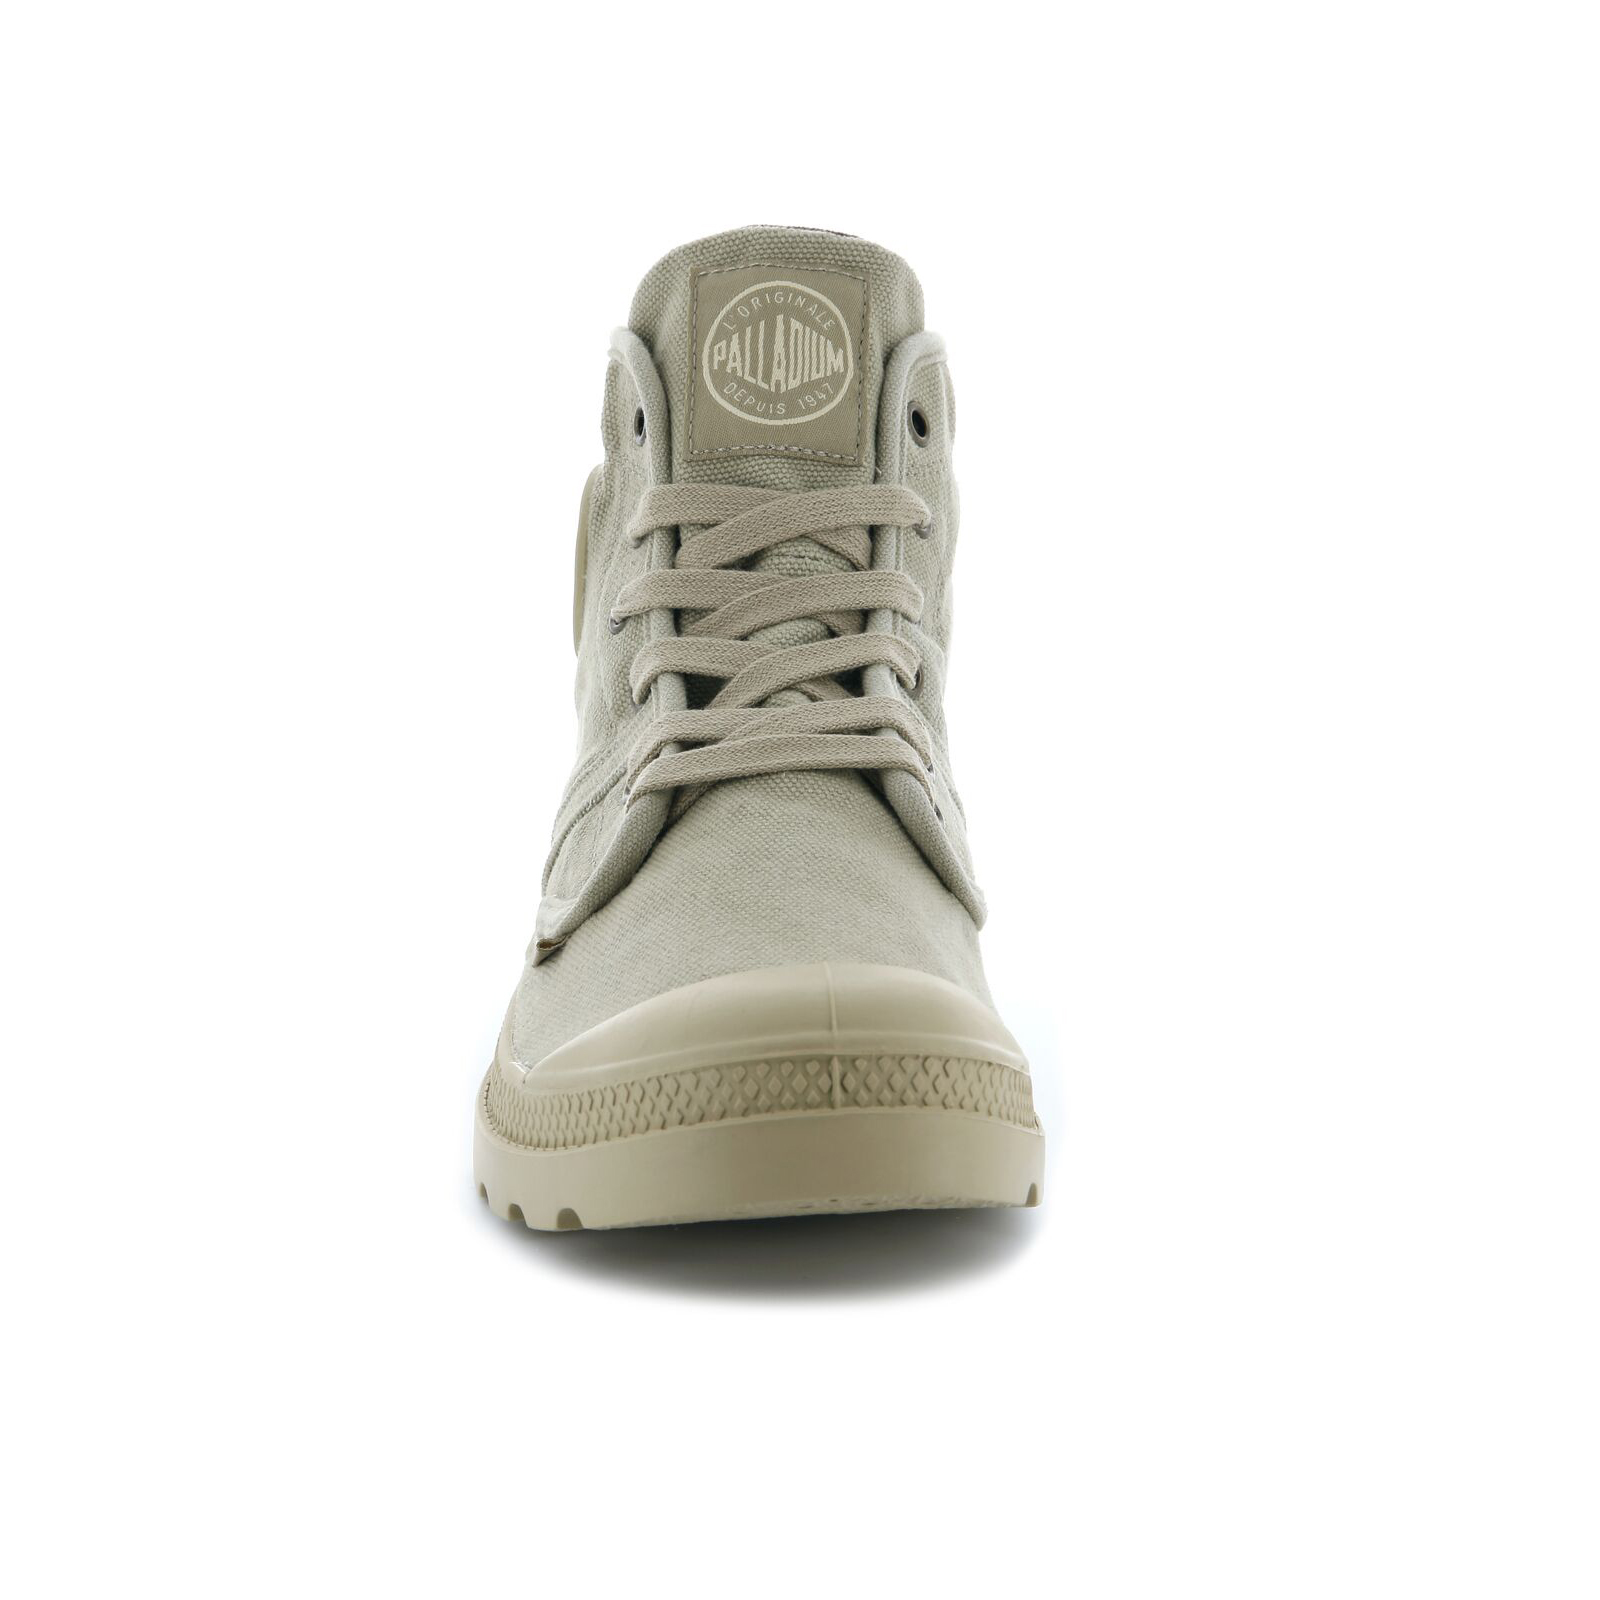 Palladium-Mens-Shoe-Pallabrouse-New-Designer-Walking-High-Top-Canvas-Ankle-Boots thumbnail 24